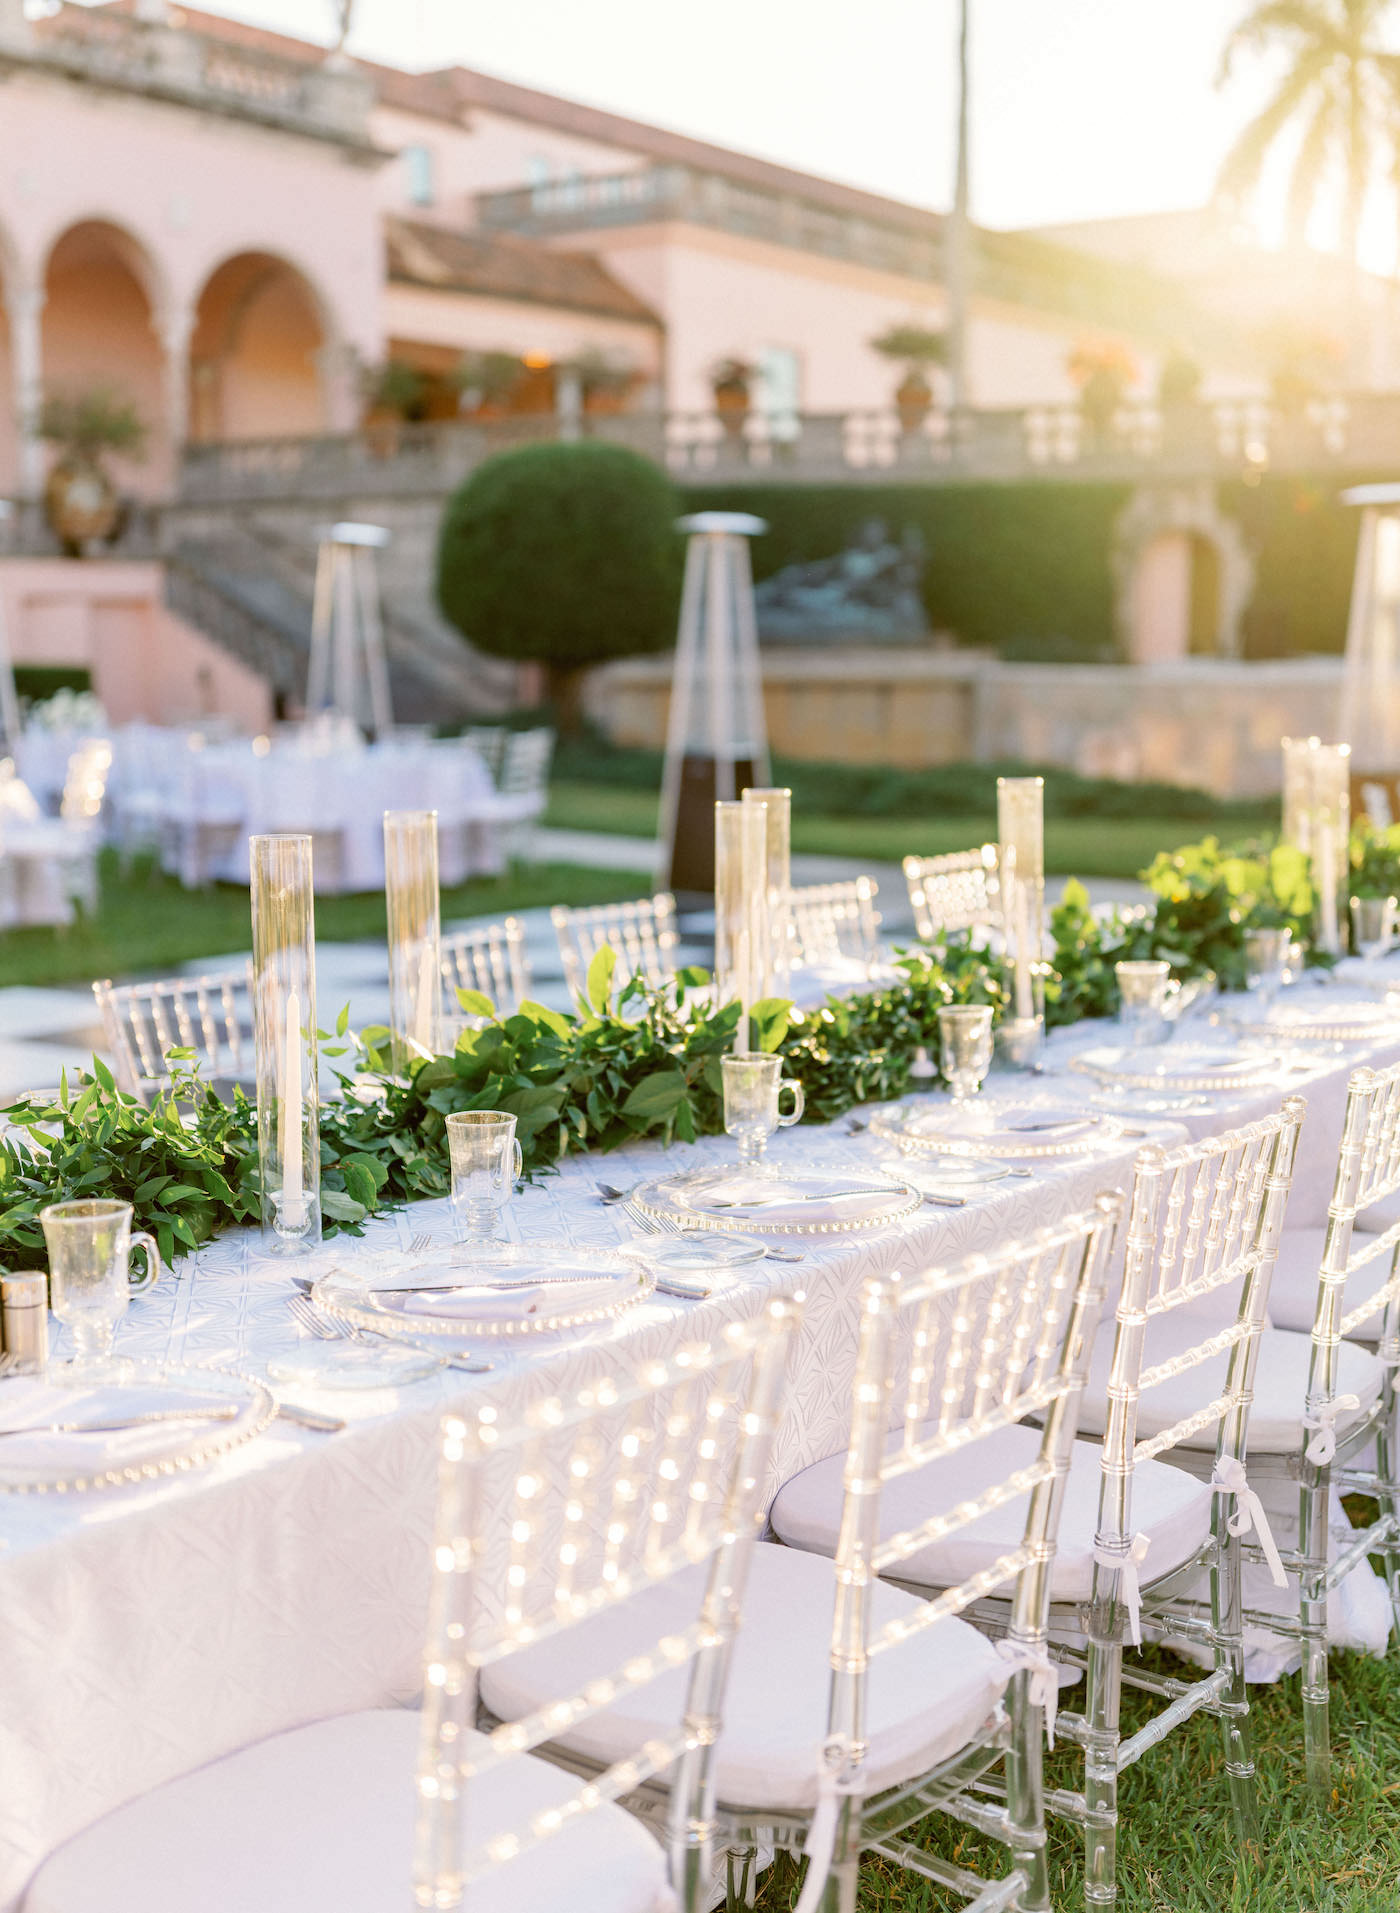 Romantic, Modern Outdoor Florida Wedding Reception, Wedding Party Long Feasting Table with White Linens and Clear Acrylic Chiavari Chairs, Greenery Garland Centerpiece with Tall Taper Candles, Glass Stemware and Chargers, Space Heaters, Black and White Checkered Dance Floor | Luxury Sarasota Wedding Planner NK Weddings